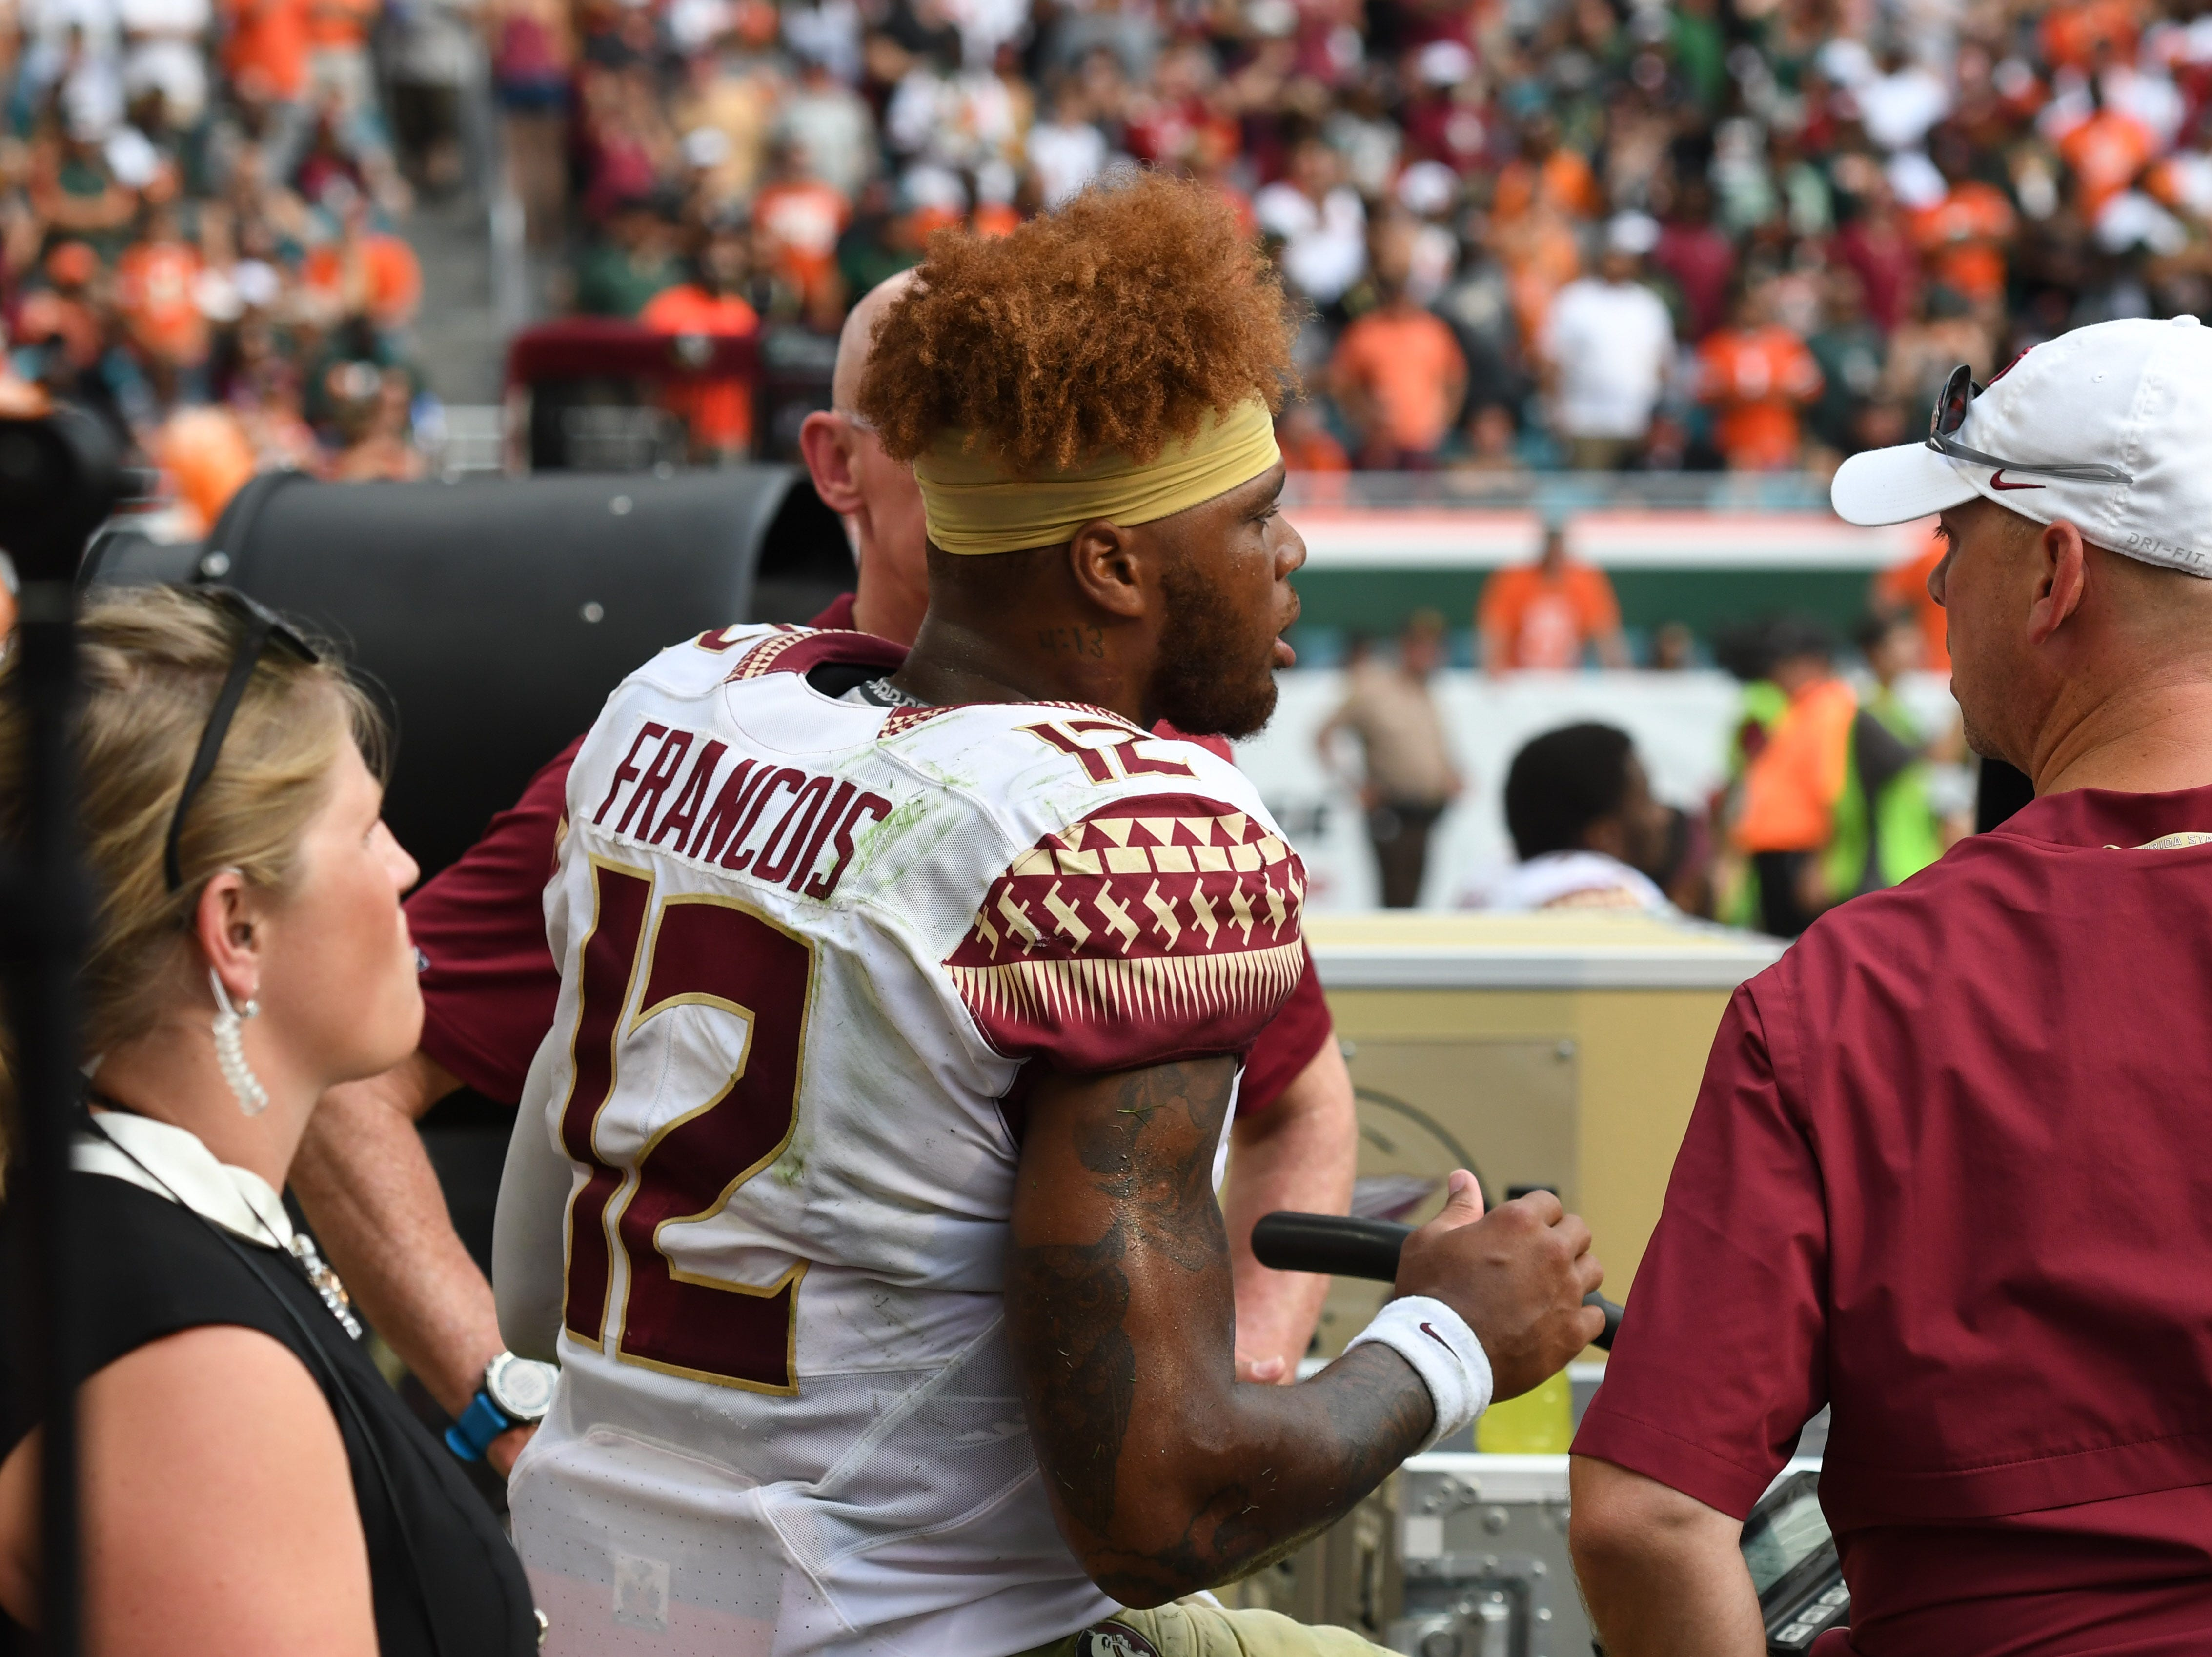 FSU redshirt junior quarterback Deondre Francois on the sideline after he was injured during a tackle in the second quarter of FSU's game against Miami at the Hard Rock Stadium on October 6th 2018.